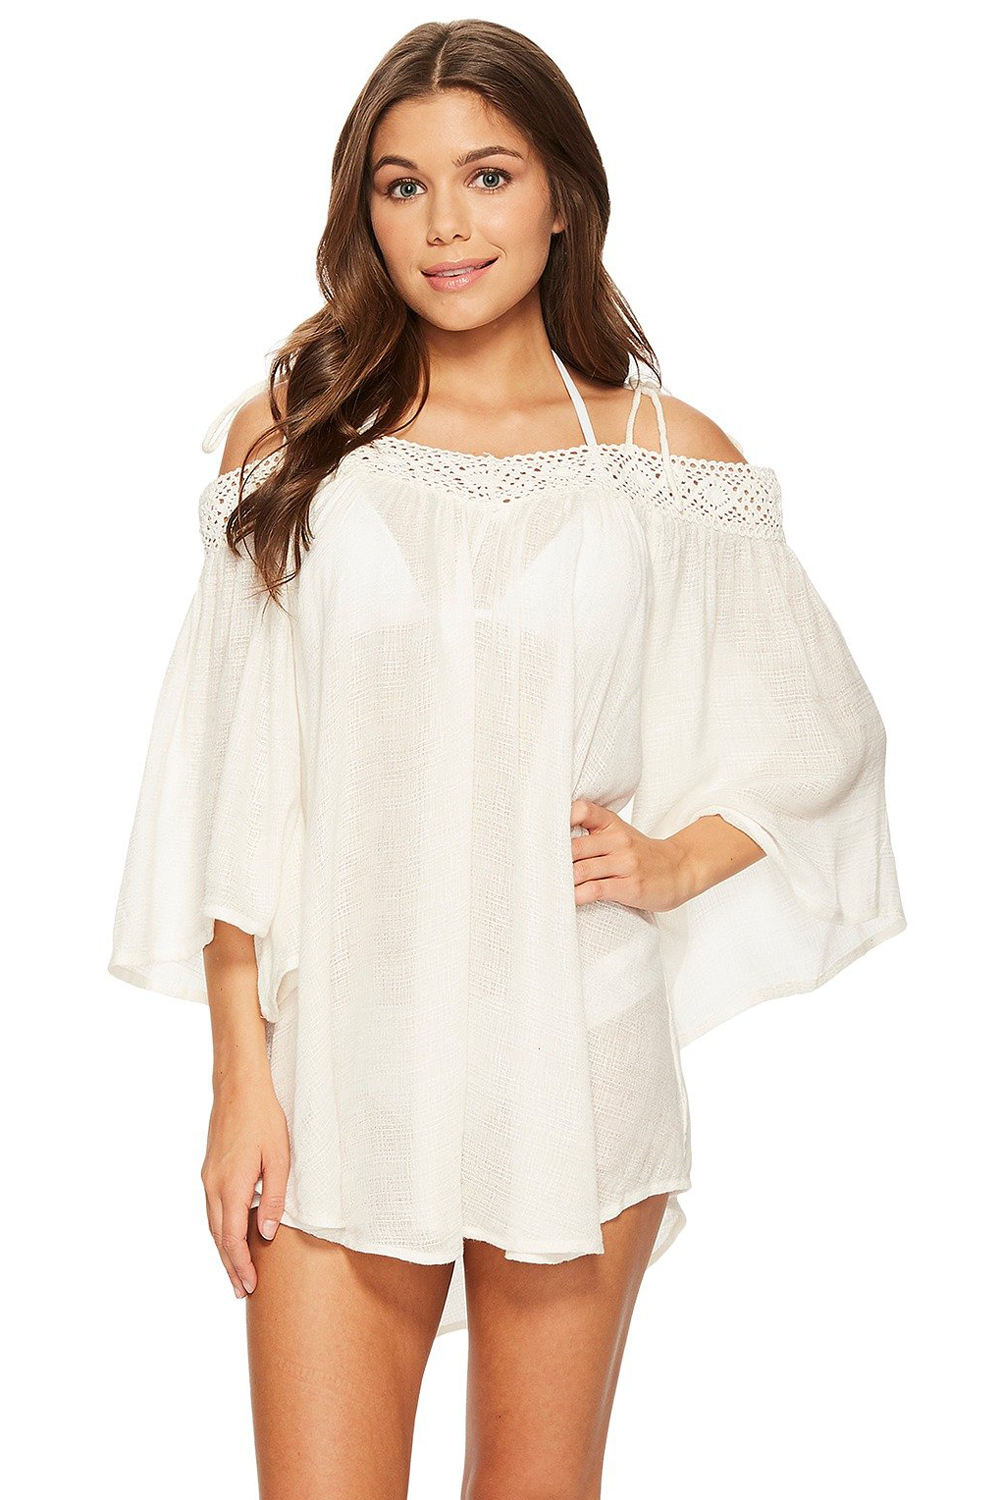 Stylish Breeze Crochet Off-the-shoulder Beachwear Women Lacing Strappy Swimwear Beach Dress Cover-Ups Wear BathingSuit Playsuits